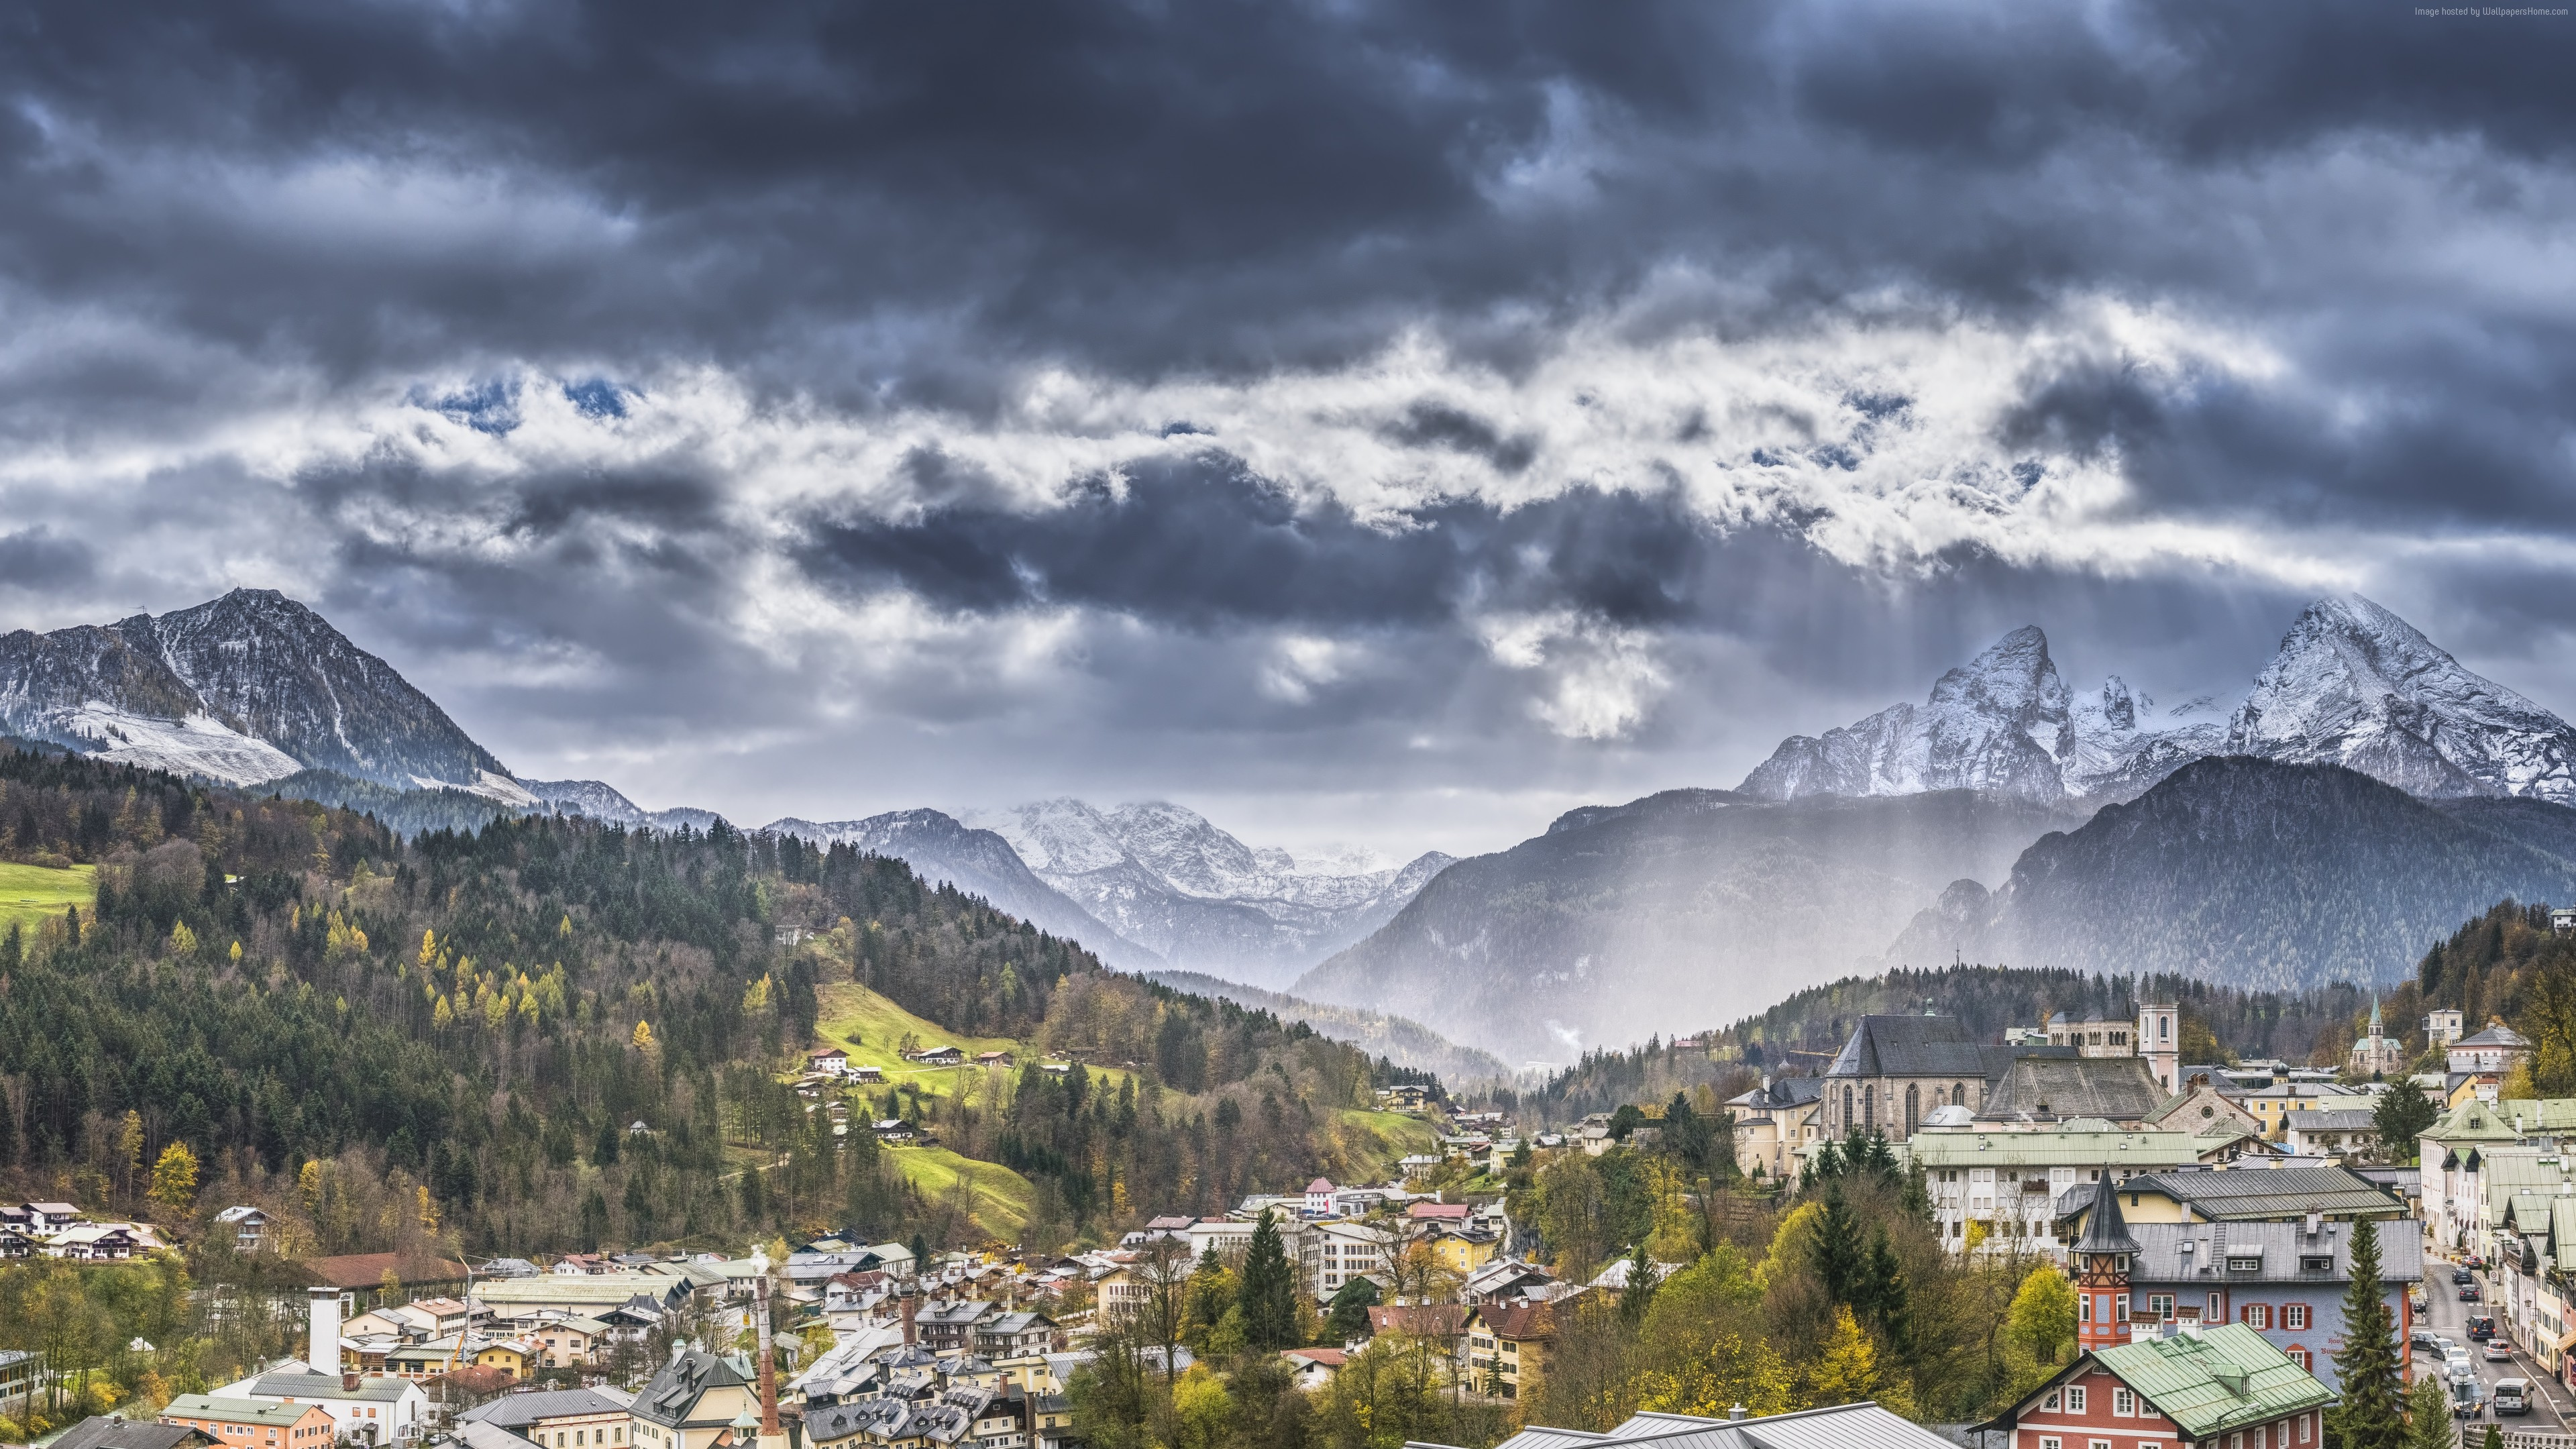 Stock Images Alps, Switzerland, Europe, mountains, trees, sky, clouds, 8k, Stock Images